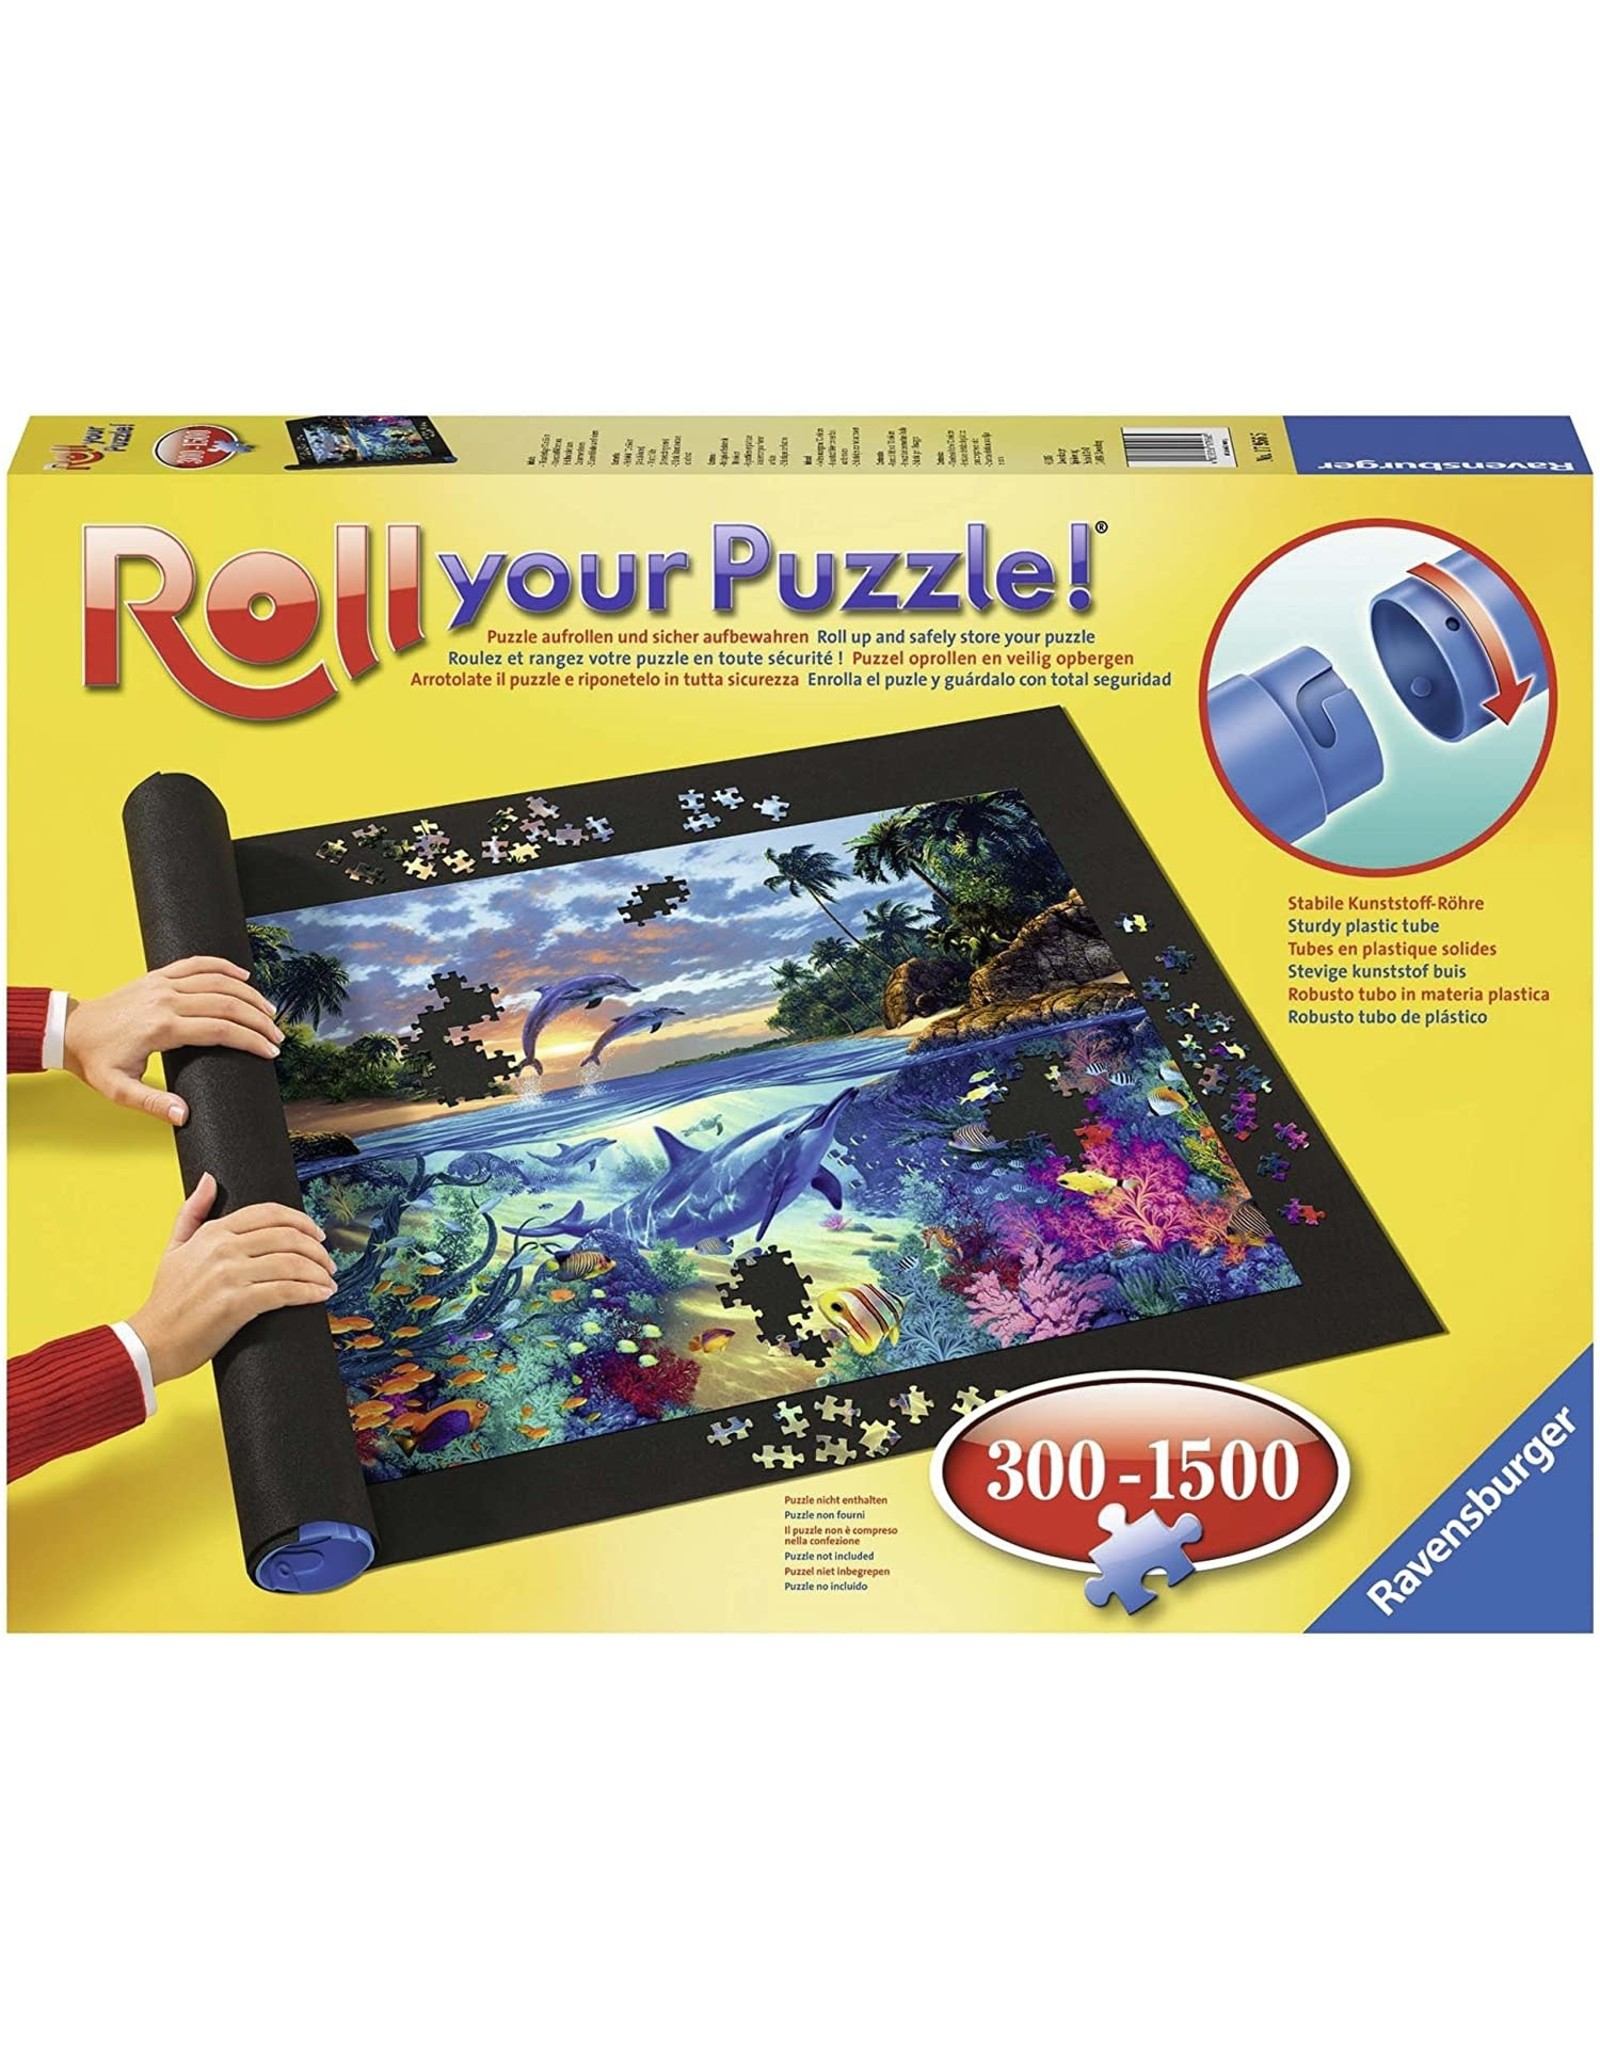 Ravensburger Roll Your Puzzle 300 pc -1500 pc